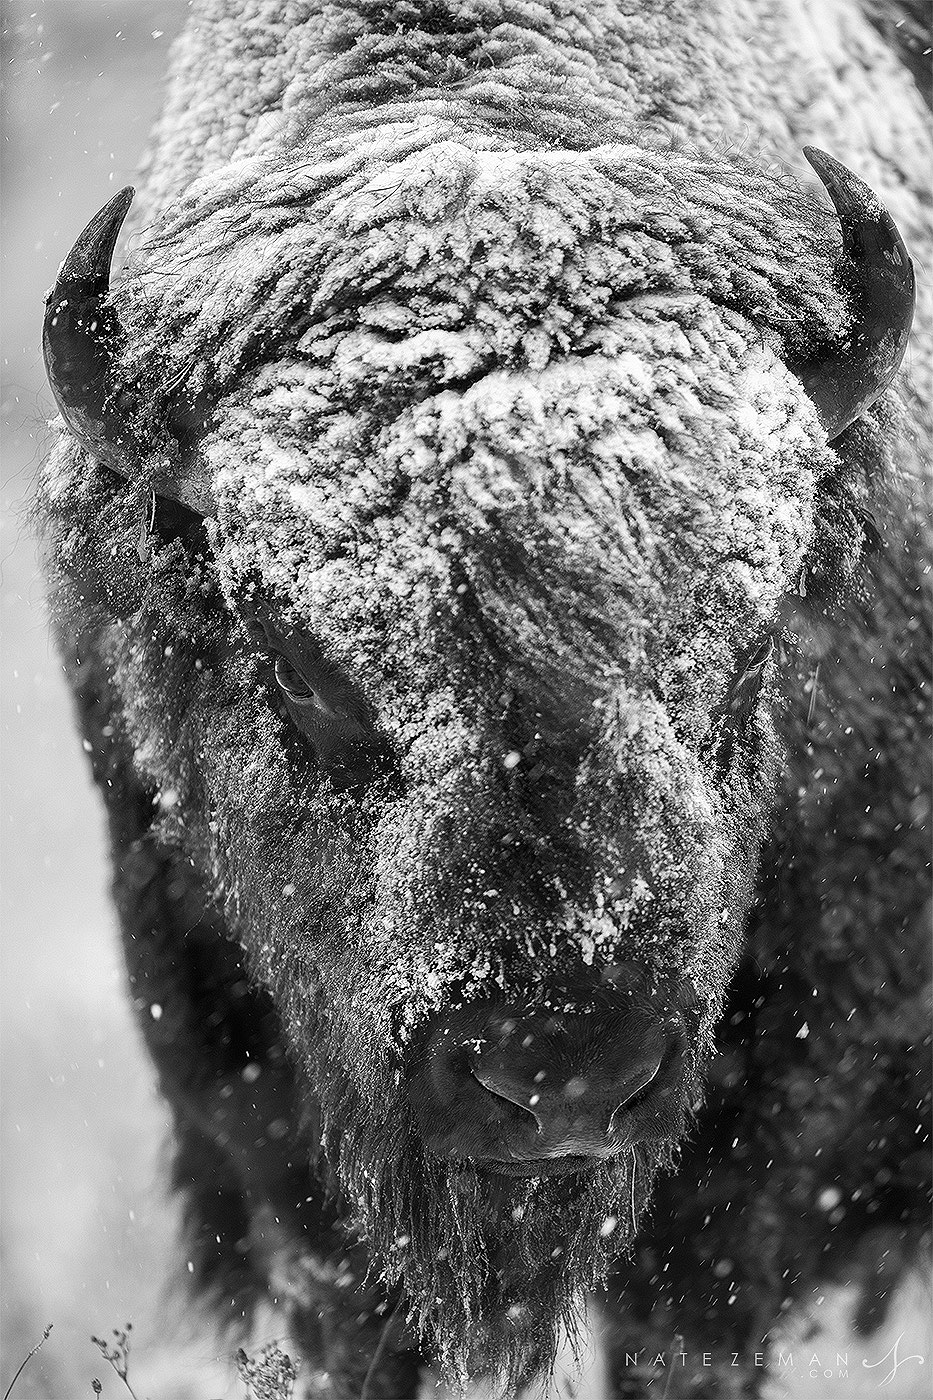 A massive bull bison grazes during a heavy autumn snow storm.